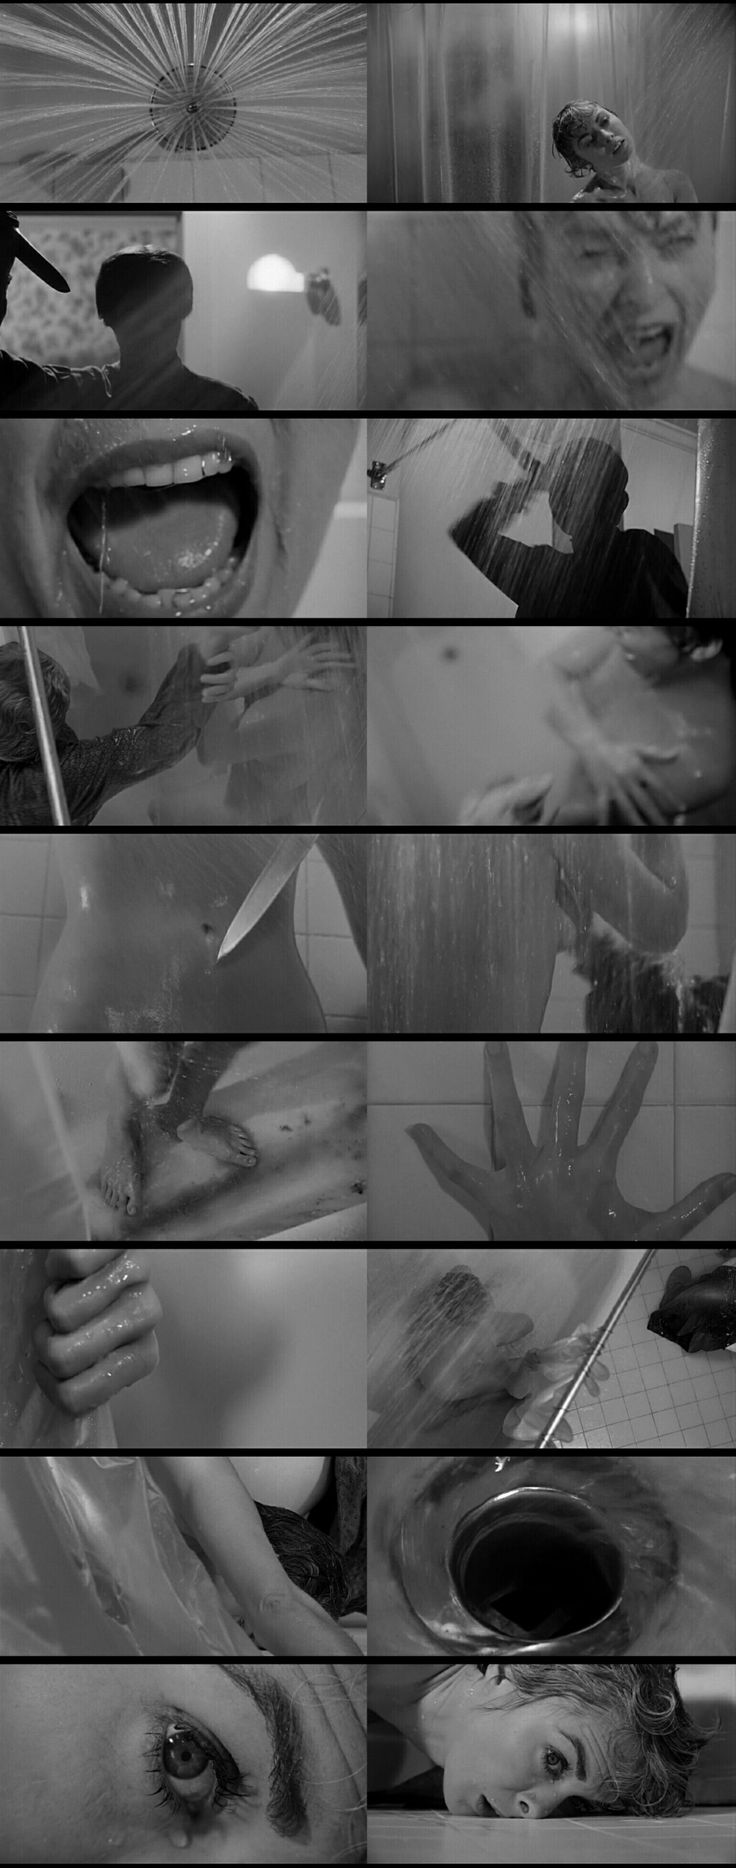 the 25 best psycho shower scene ideas on pinterest